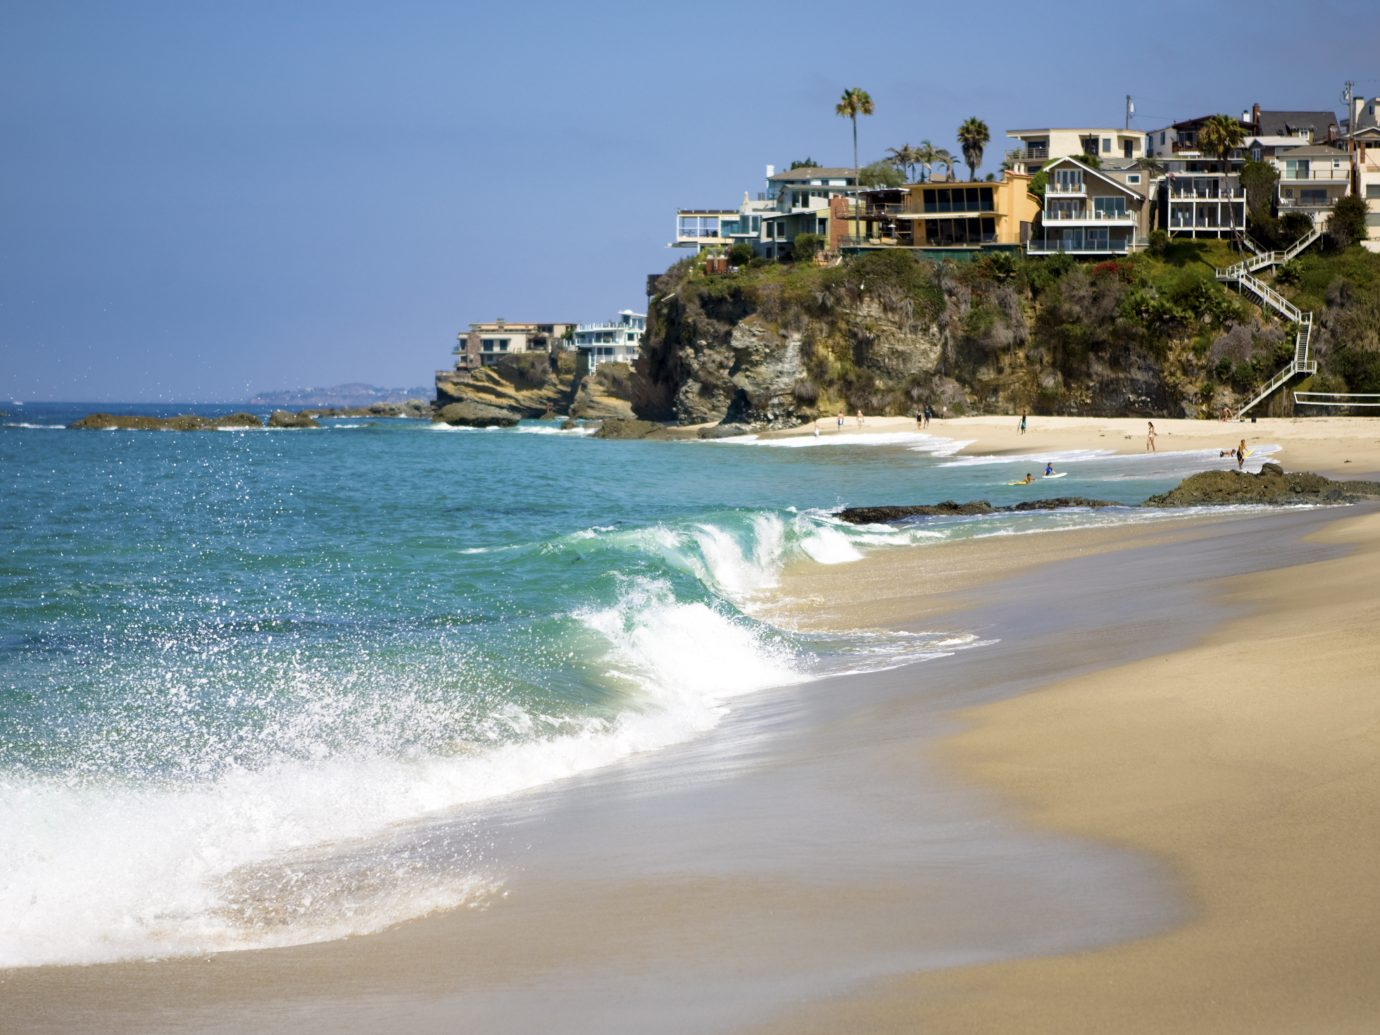 A view from one of the many Beaches in Laguna Niguel